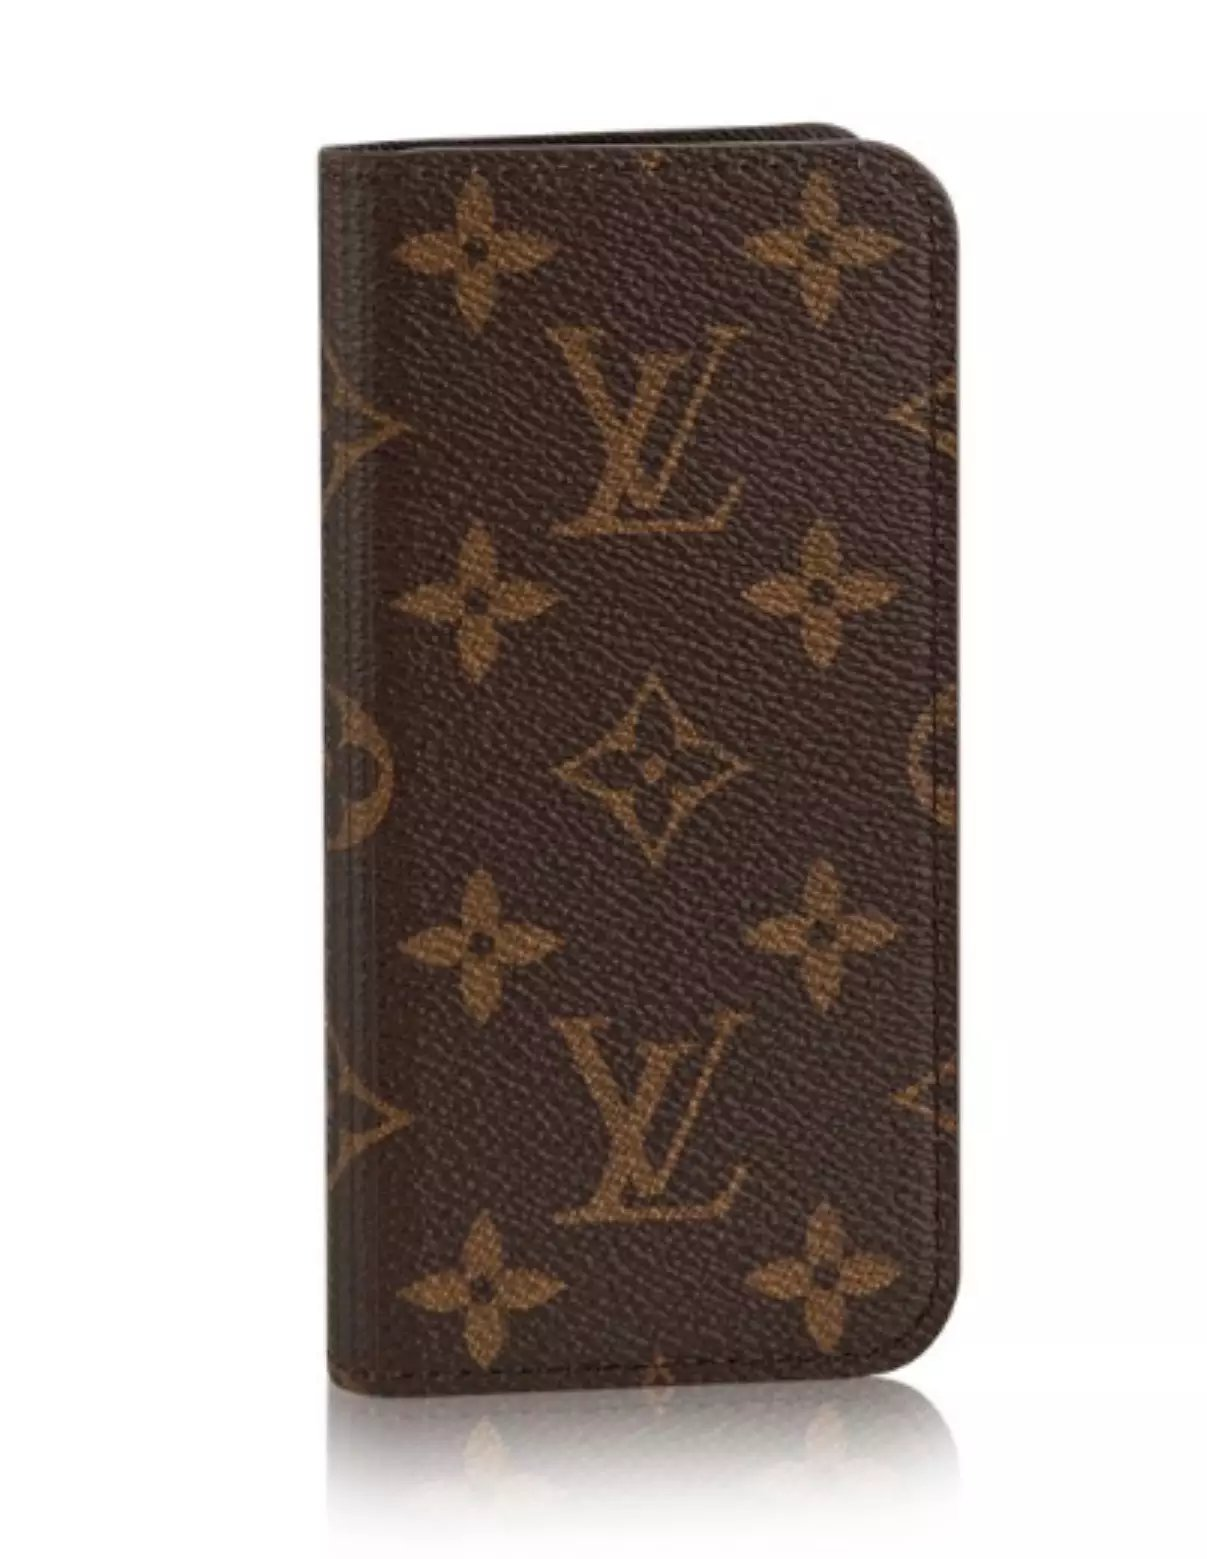 eigene iphone hülle iphone case bedrucken Louis Vuitton iphone 8 Plus hüllen die besten iphone hüllen eigenes iphone ca8 Plus erstellen iphone etuis iphone 8 Plus a8 Plus glitzer appel iphone 8 Plus handy hülle htc one